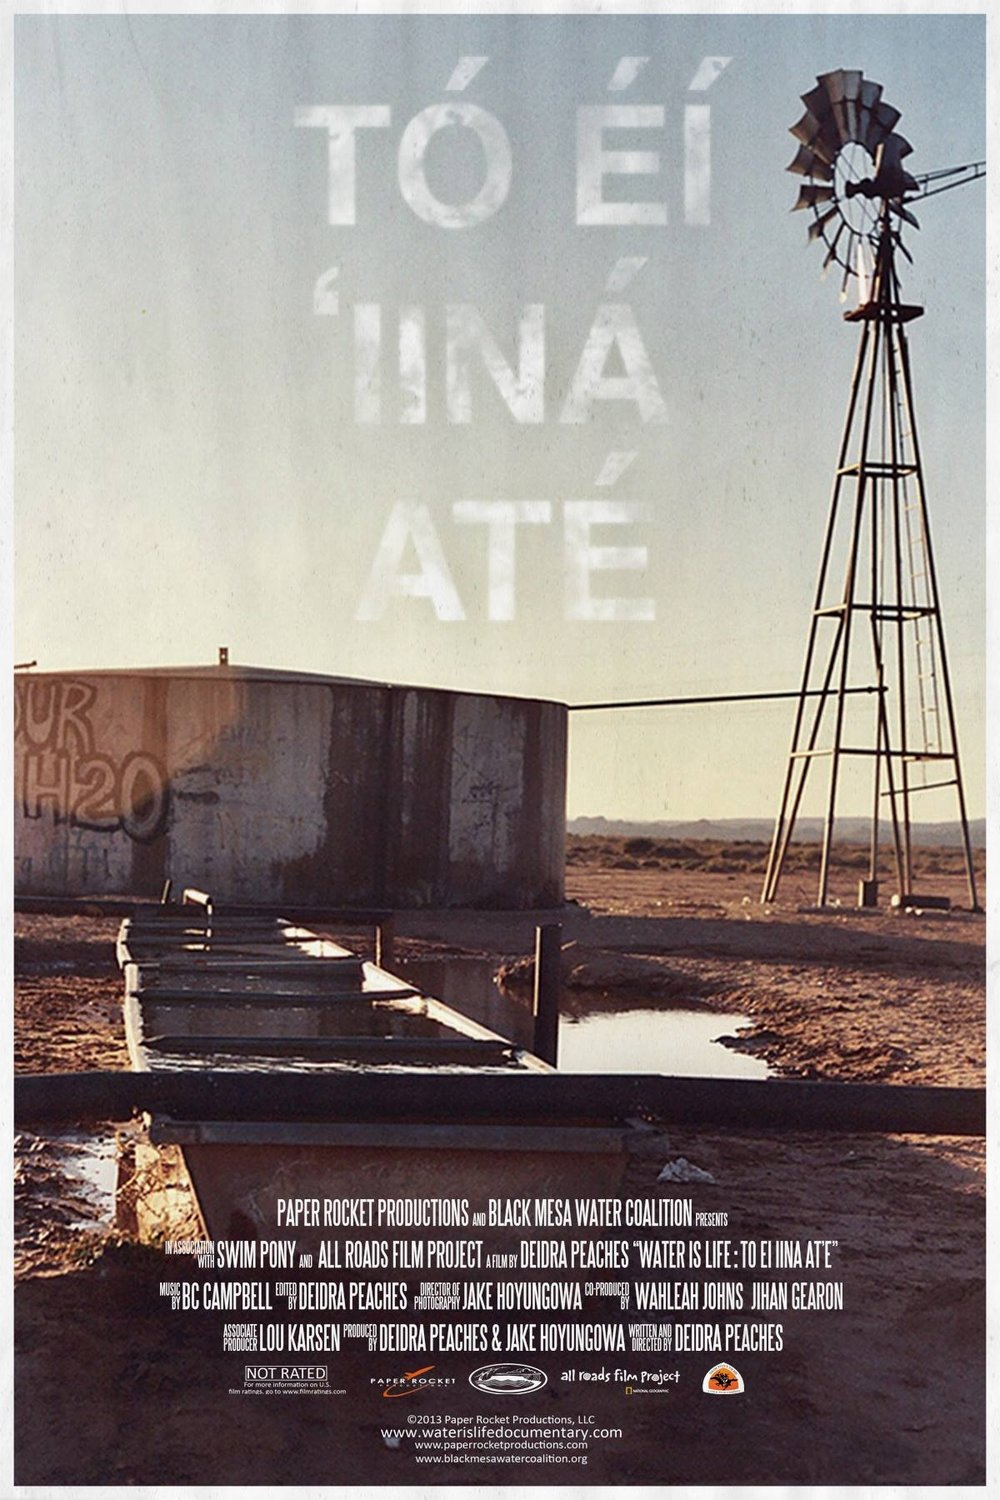 Tó éí ííná át'e: Water Is Life - 90 mins | Directed by: Deidra Peaches & Jake Hoyungowa | Music Composed by: BC CampbellShort SummaryTó éí ííná át'é (Water is Life) is a film illustrating environmental and social issues impacting indigenous nations in the Southwest of the United States. Two filmmakers (Peaches and Hoyungowa) guide us through the history of industry and the indigenous perspective often overlooked by mainstream media.